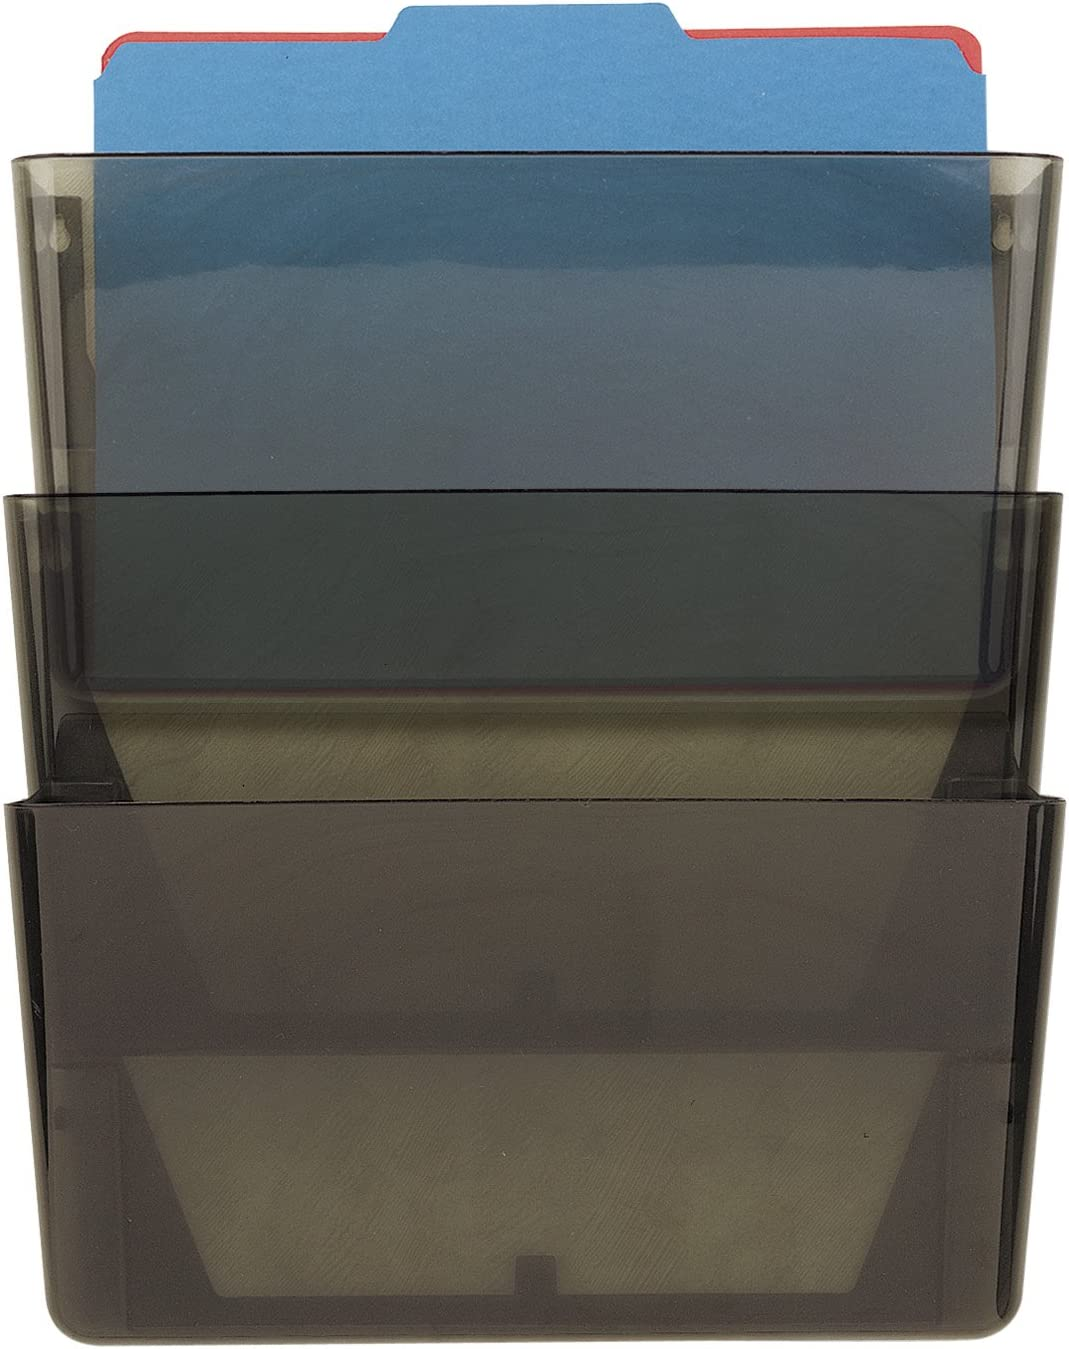 Officemate Wall File Smoke 3 of Import Set 21421 Max 46% OFF